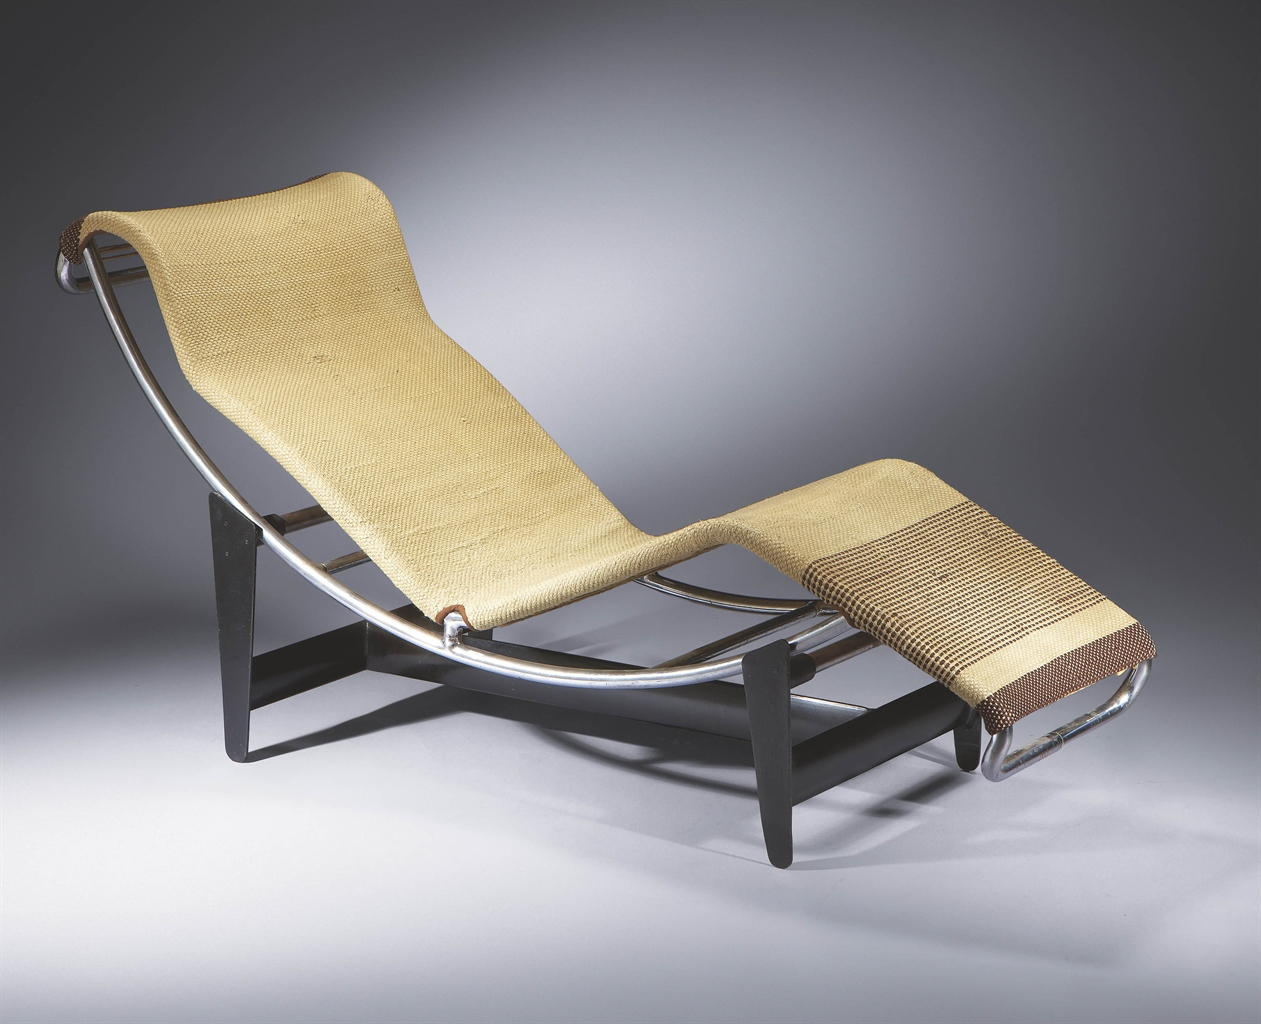 Le corbusier 1887 1965 pierre jeanneret 1896 1967 et for Chaise du corbusier